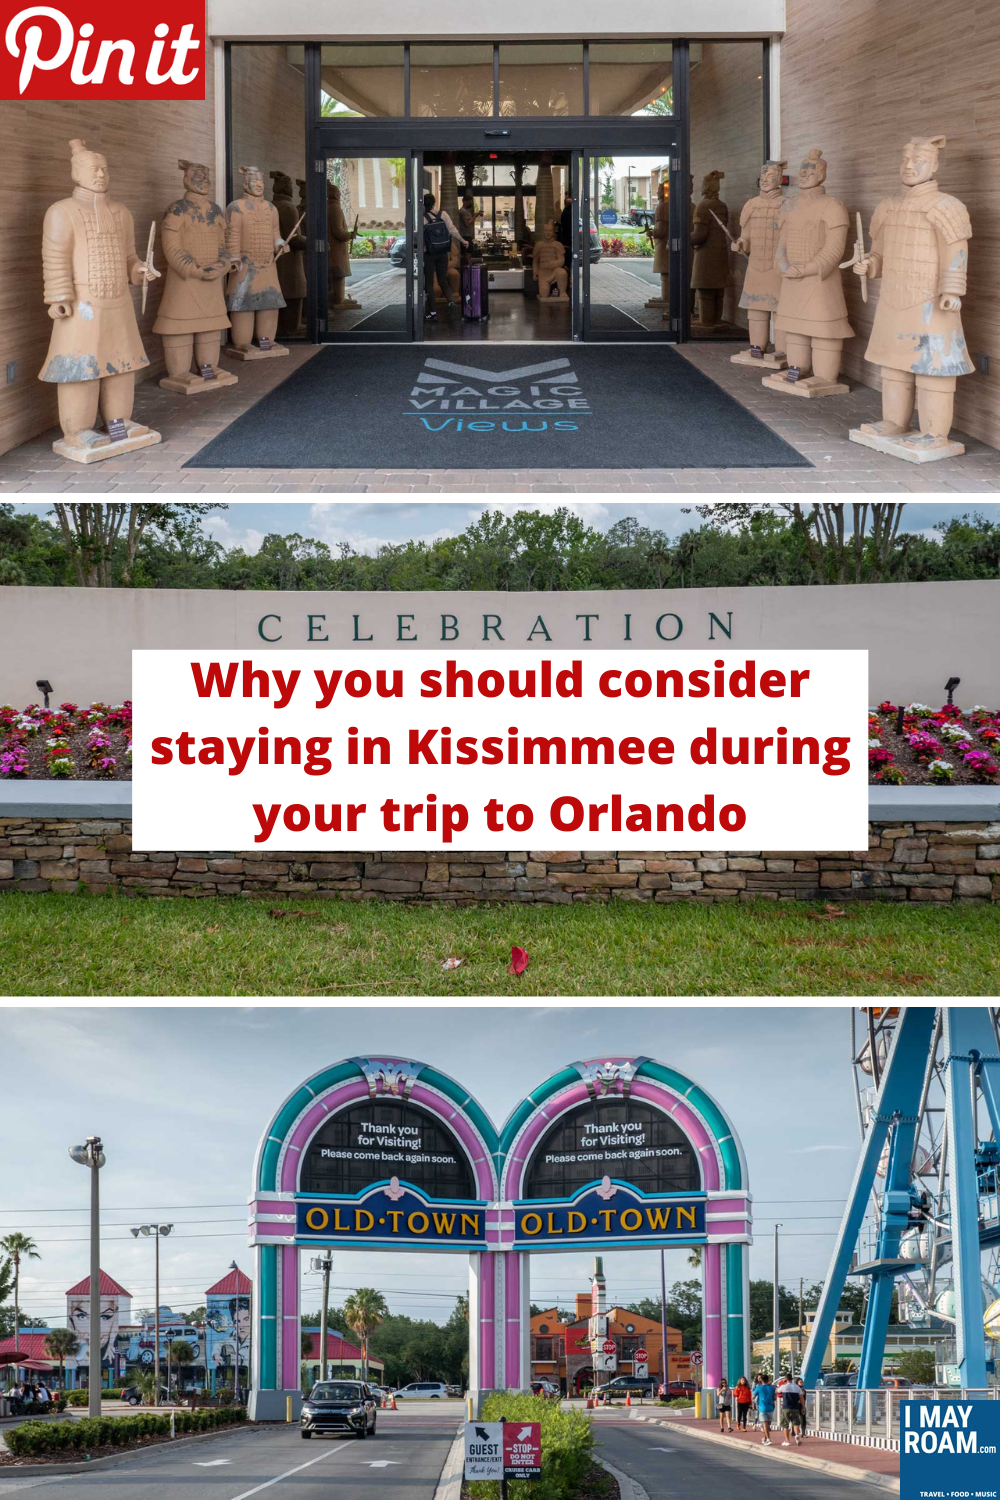 Pinterest Why you should consider staying in Kissimmee during your trip to Orlando